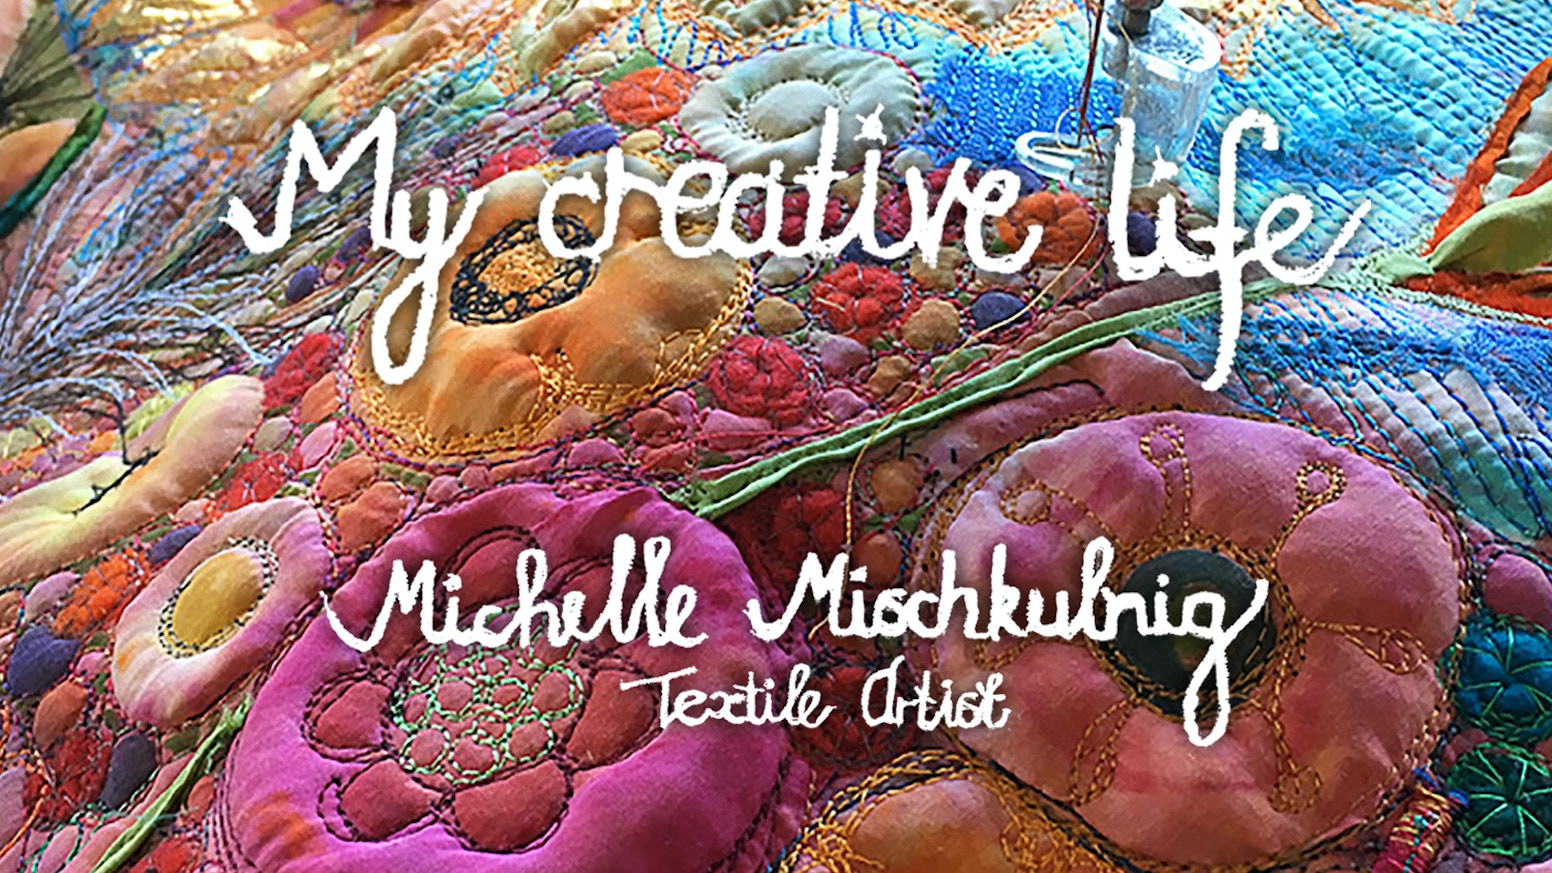 My Creative Life is a carefully crafted art book capturing the textile art and inspiration of textile artist Michelle Mischkulnig.